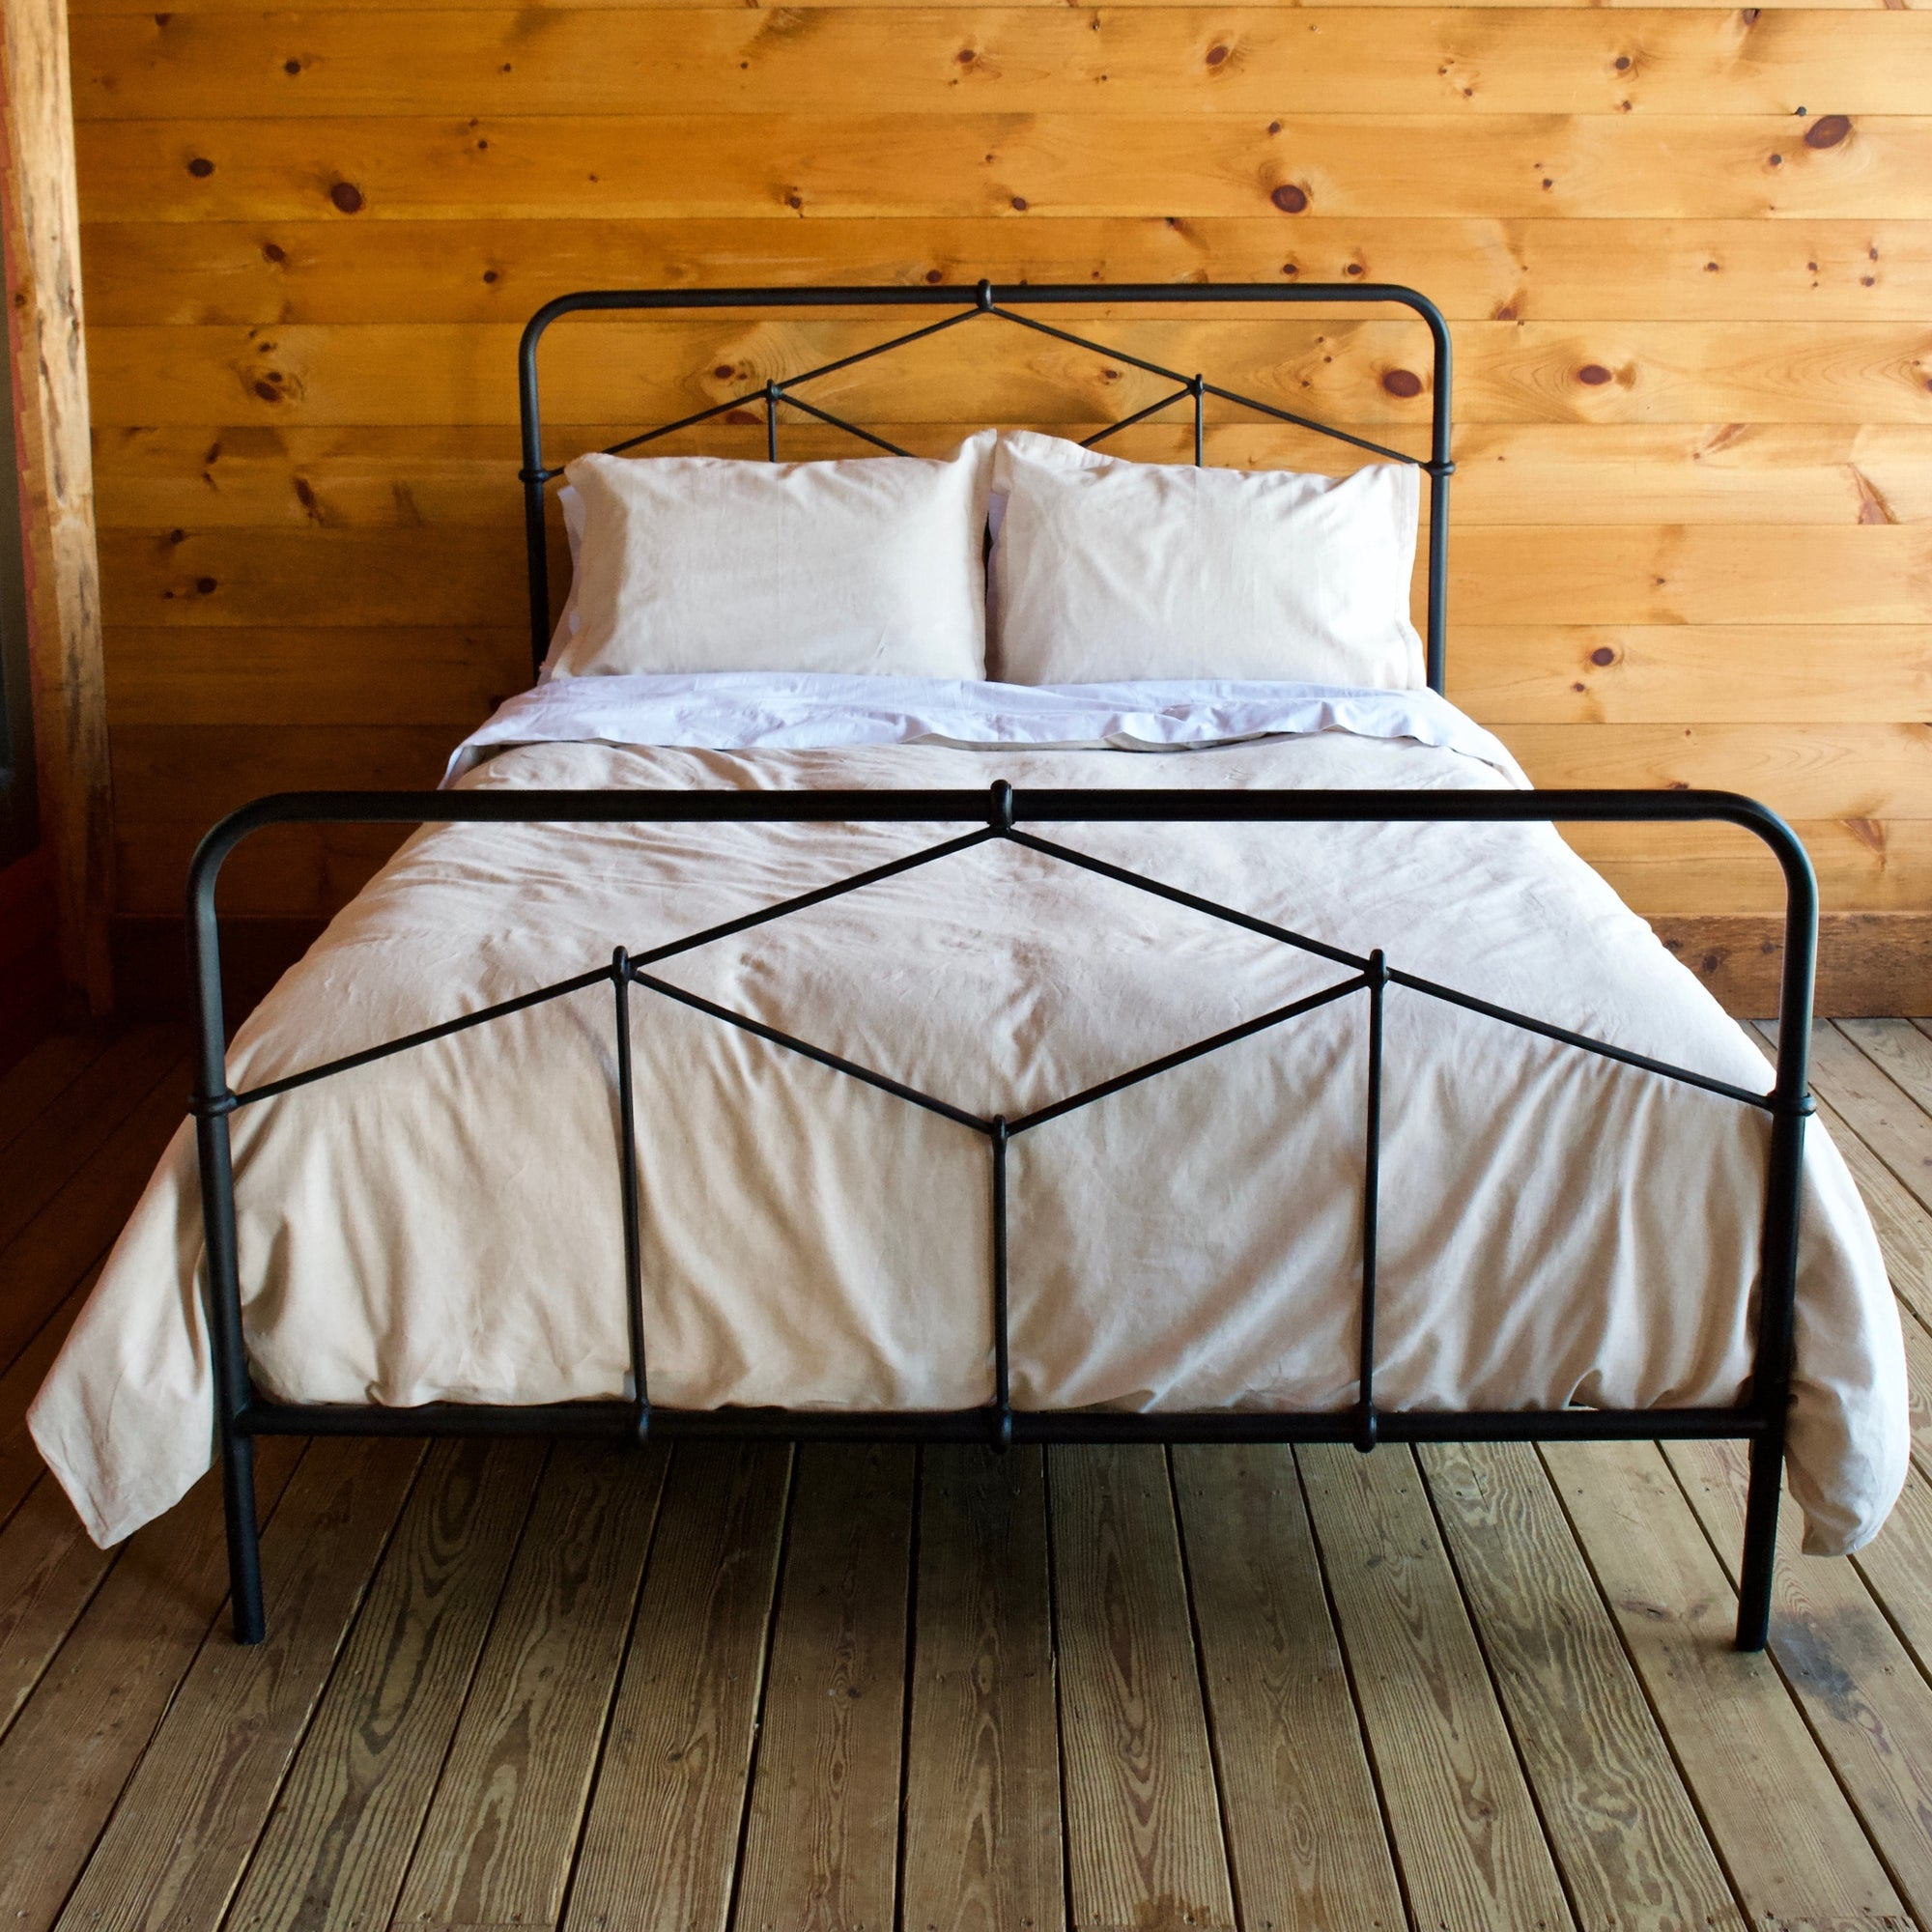 Black Iron Bed Rustic Industrial Bed Dartbrook Rustic